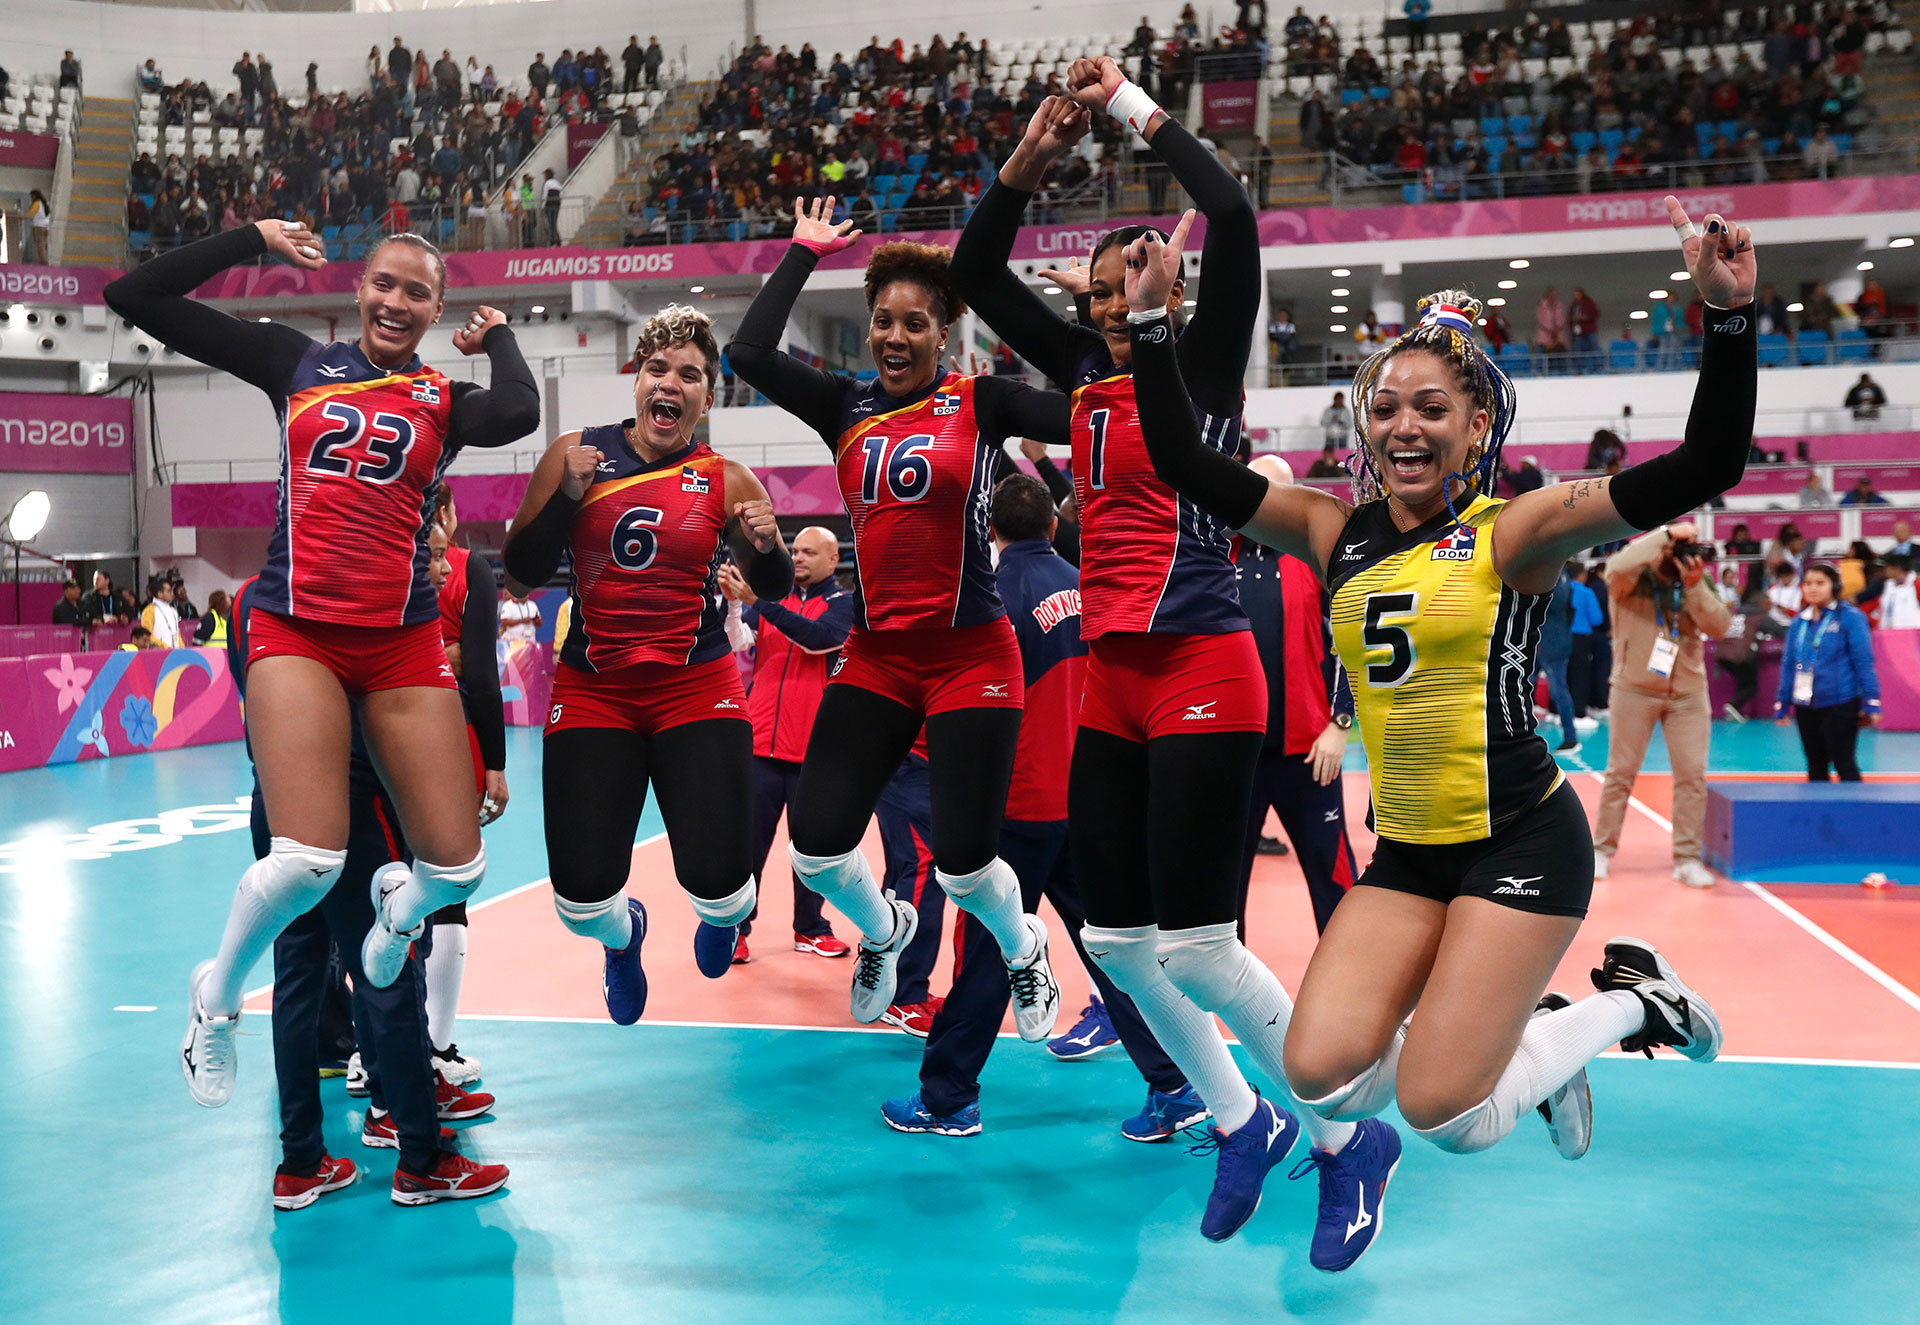 XVIII Pan American Games - Lima 2019 - Volleyball - Women Gold Medal Match - Colombia v Dominican Republic - Callao Sports Center, Lima, Peru - August 11, 2019 Dominican Republic players celebrate winning a gold medal. REUTERS/Susana Vera